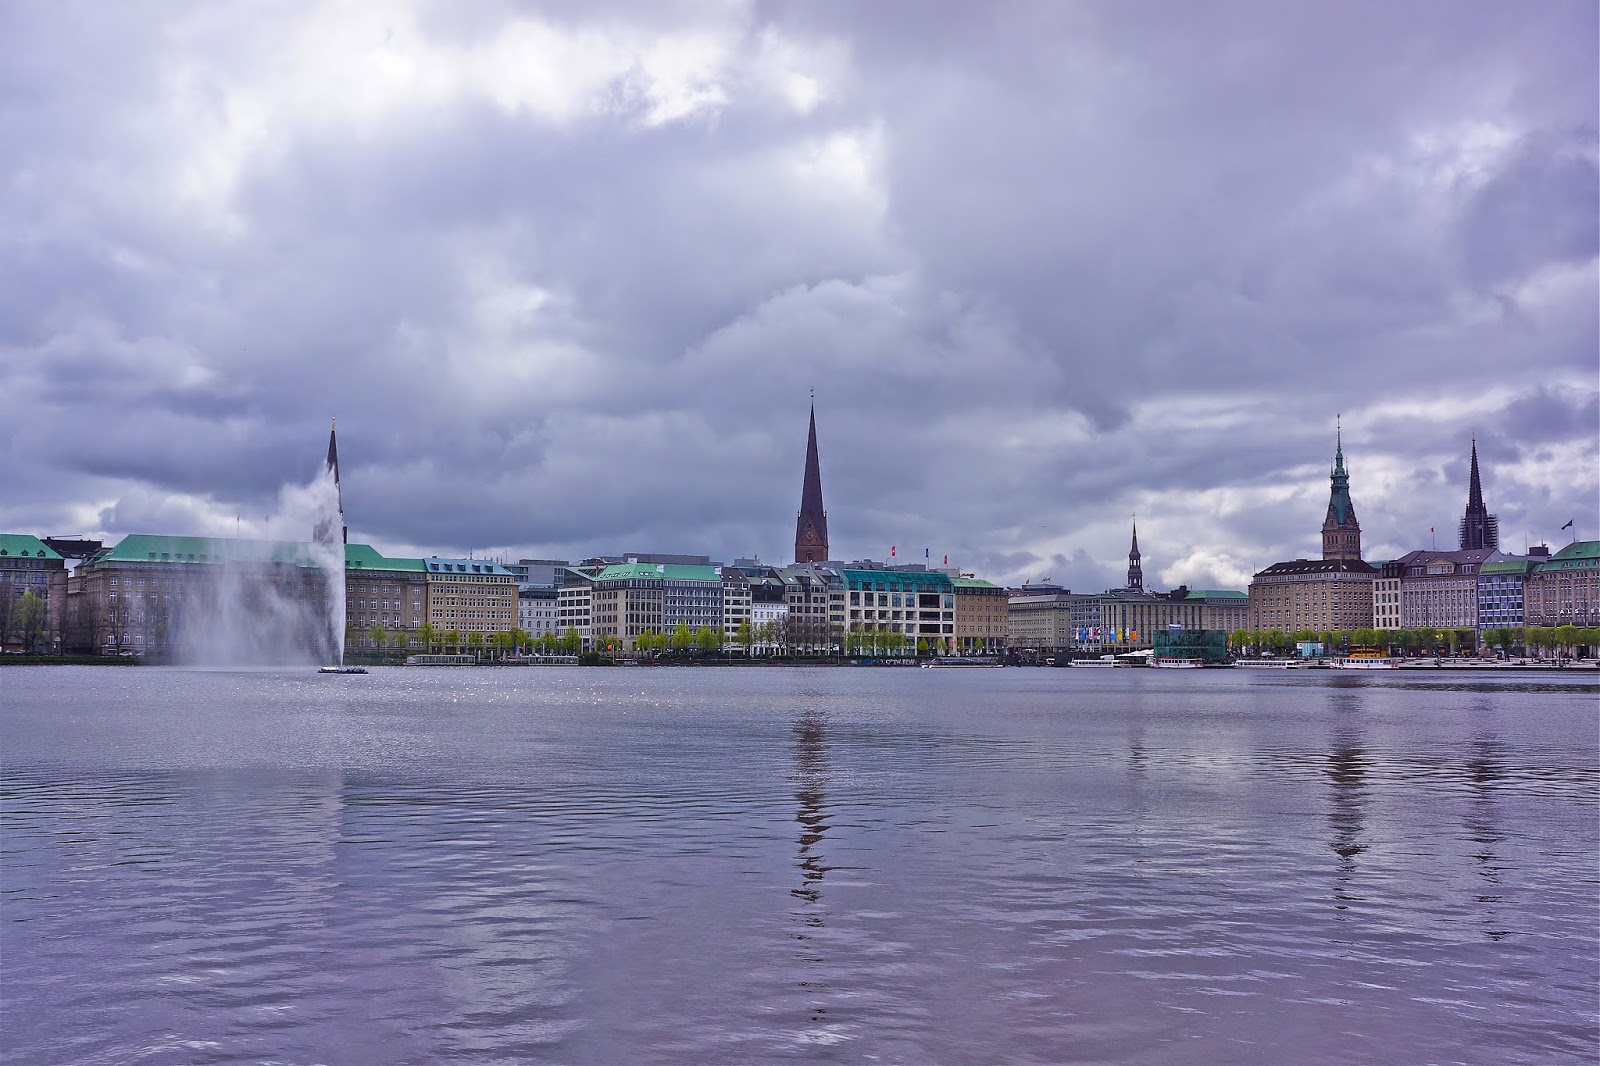 Picture of the Binnenalster and Jet d'eau (water fountain) in Hamburg, Germany.